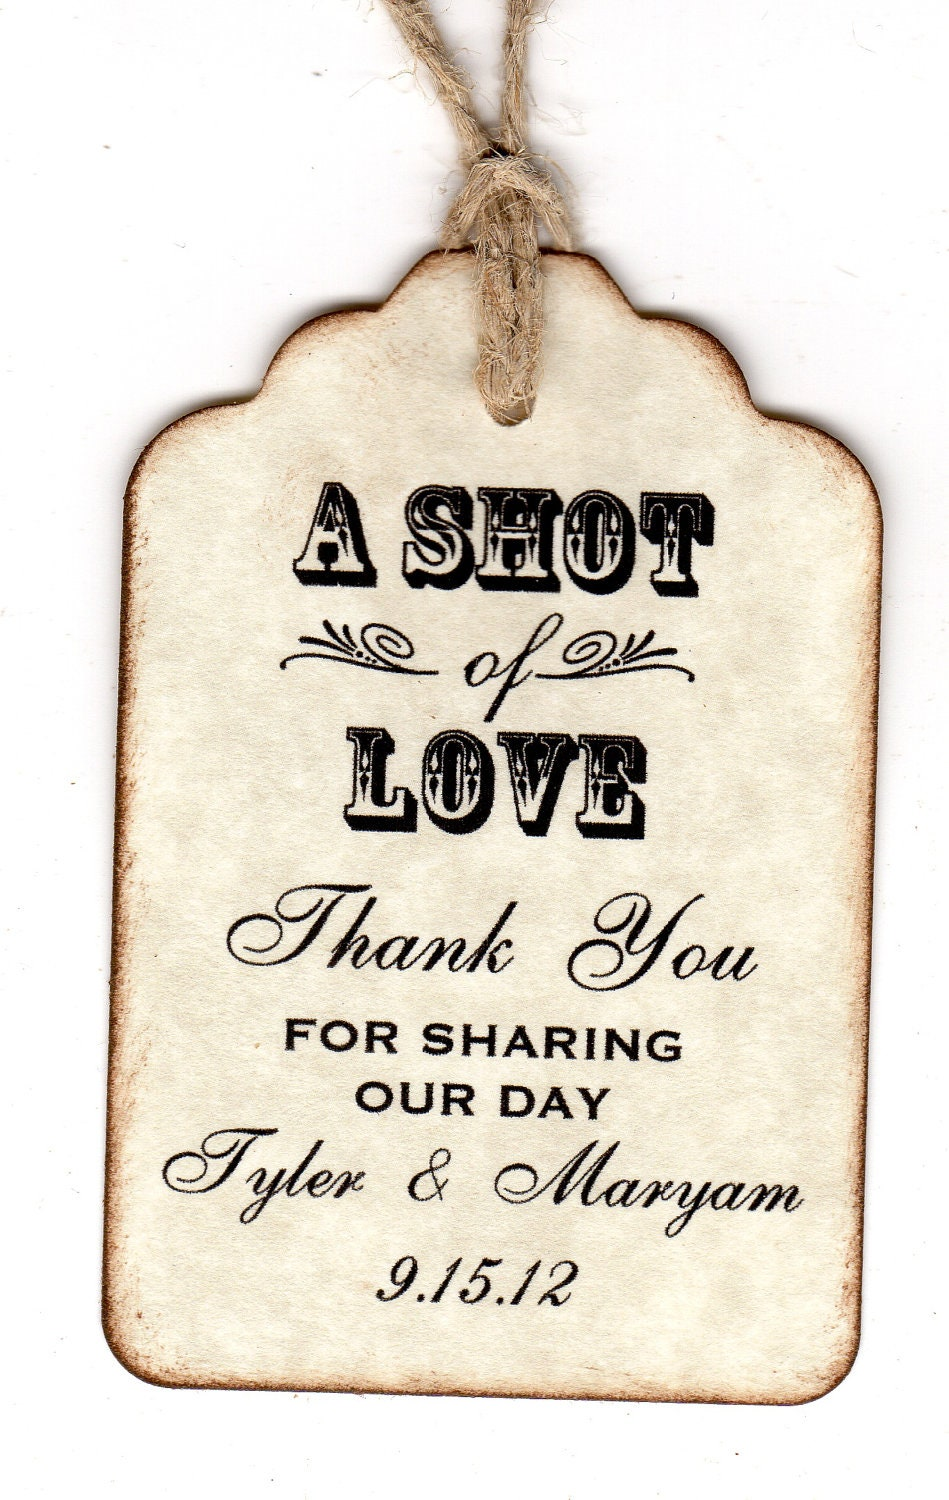 Wedding Favor Tags Custom : 50 Personalized Shot Of Love Wedding Favor Tags / by luvs2create2